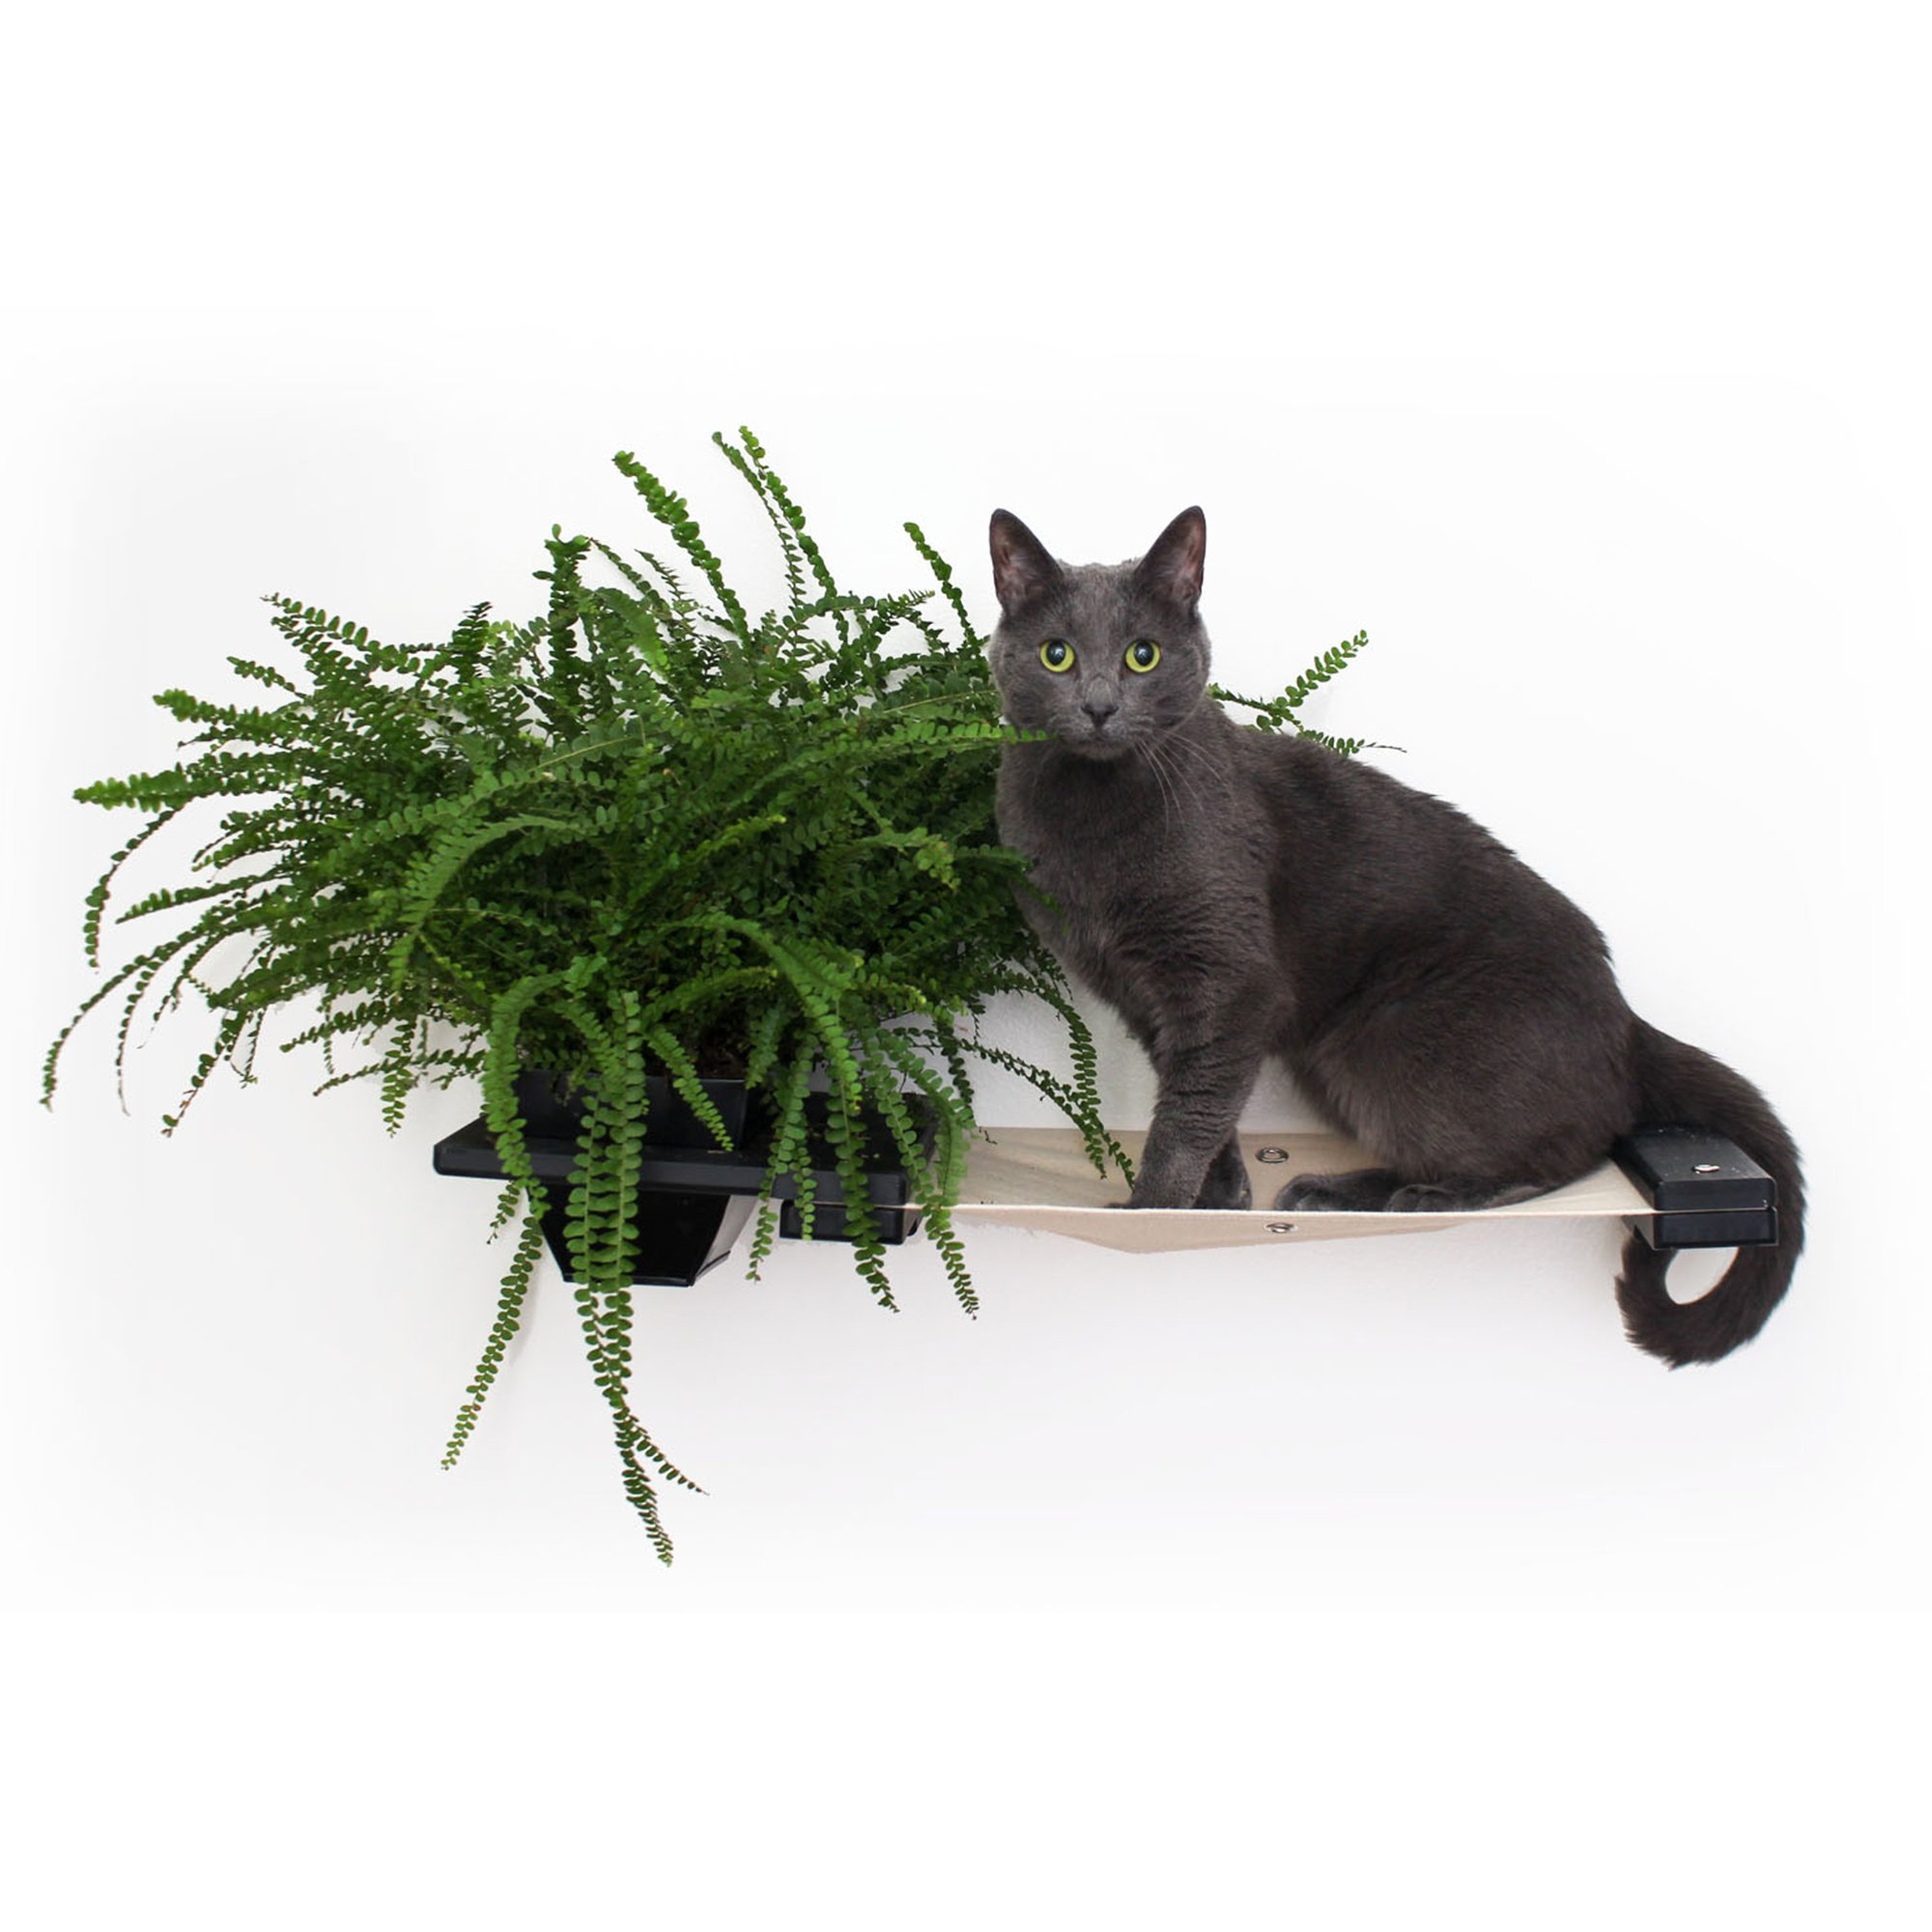 Catastrophicreations The Cat Mod Planter Shelf For Cats In Onyx, 10 In W X 3 In H, 4 Lb